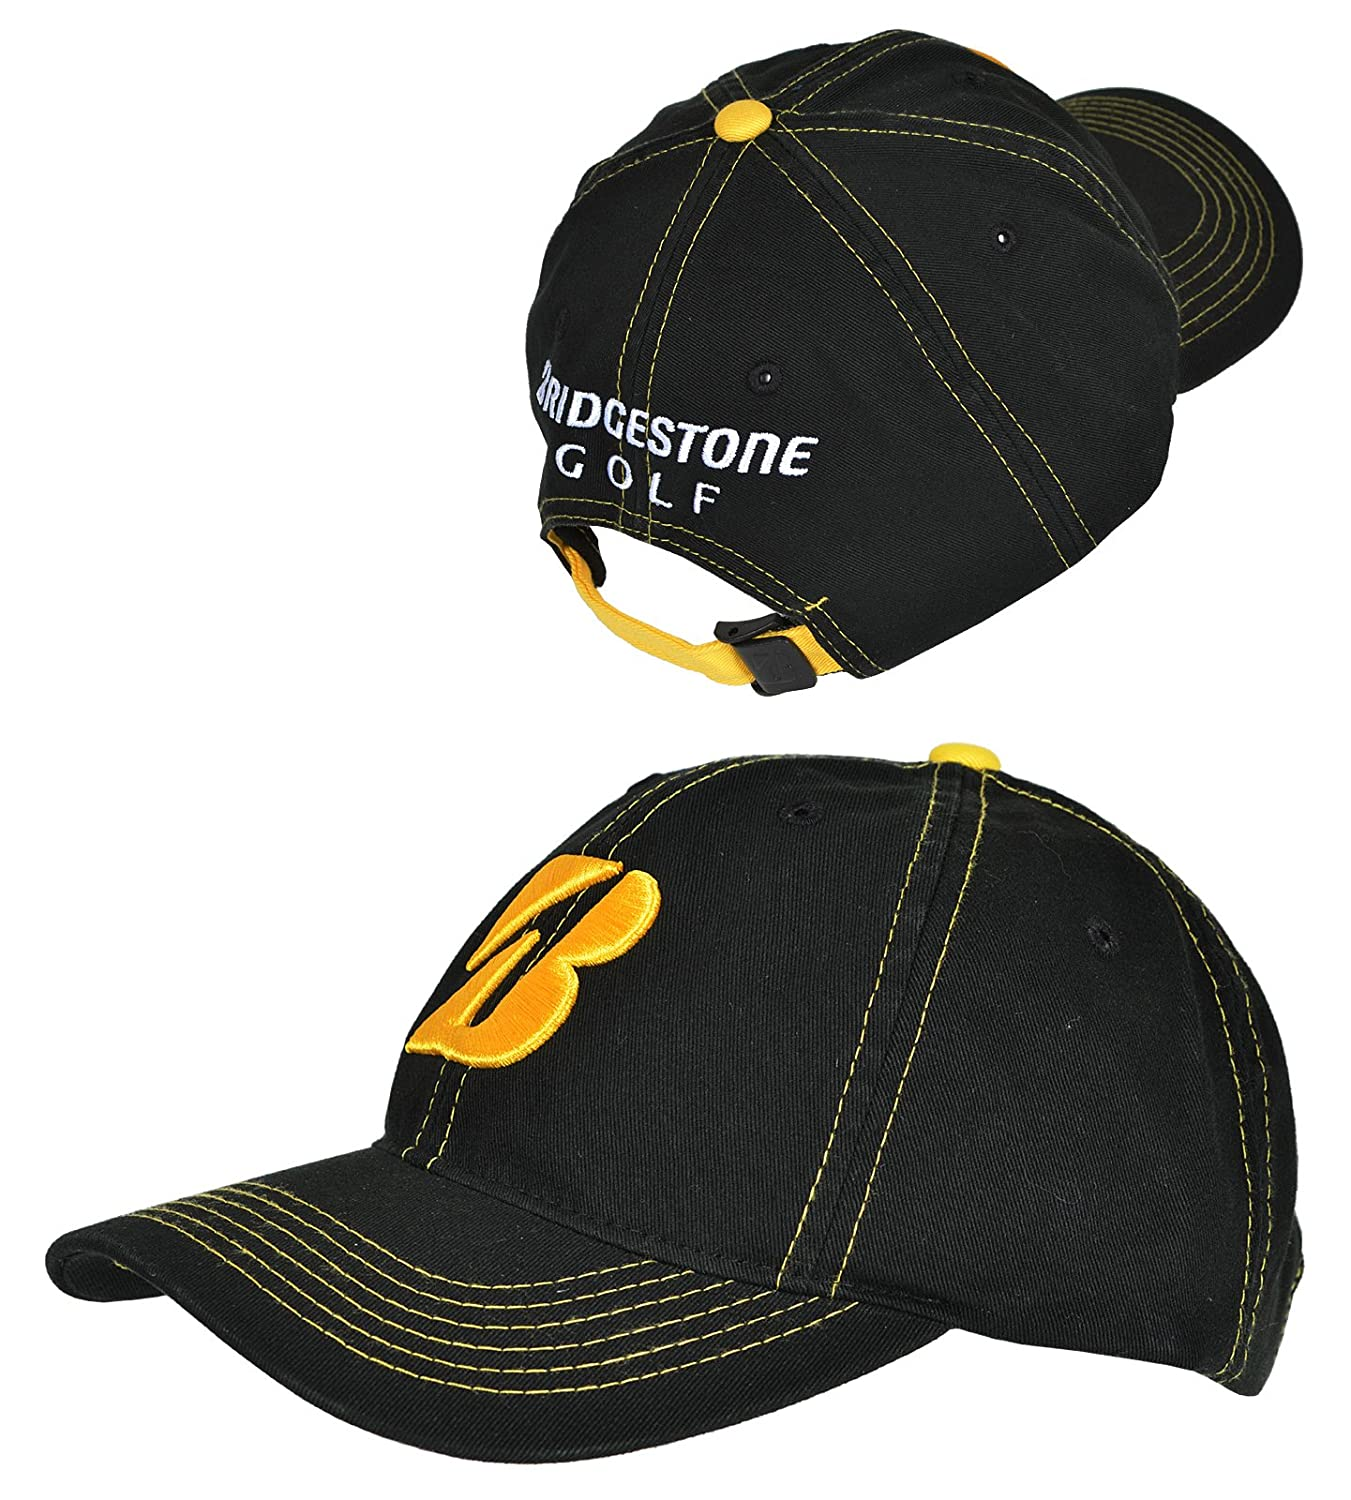 Amazon.com  Men s Bridgestone Precept Contrast Stitch Team Colors Cap   Sports   Outdoors d6e0e89000f